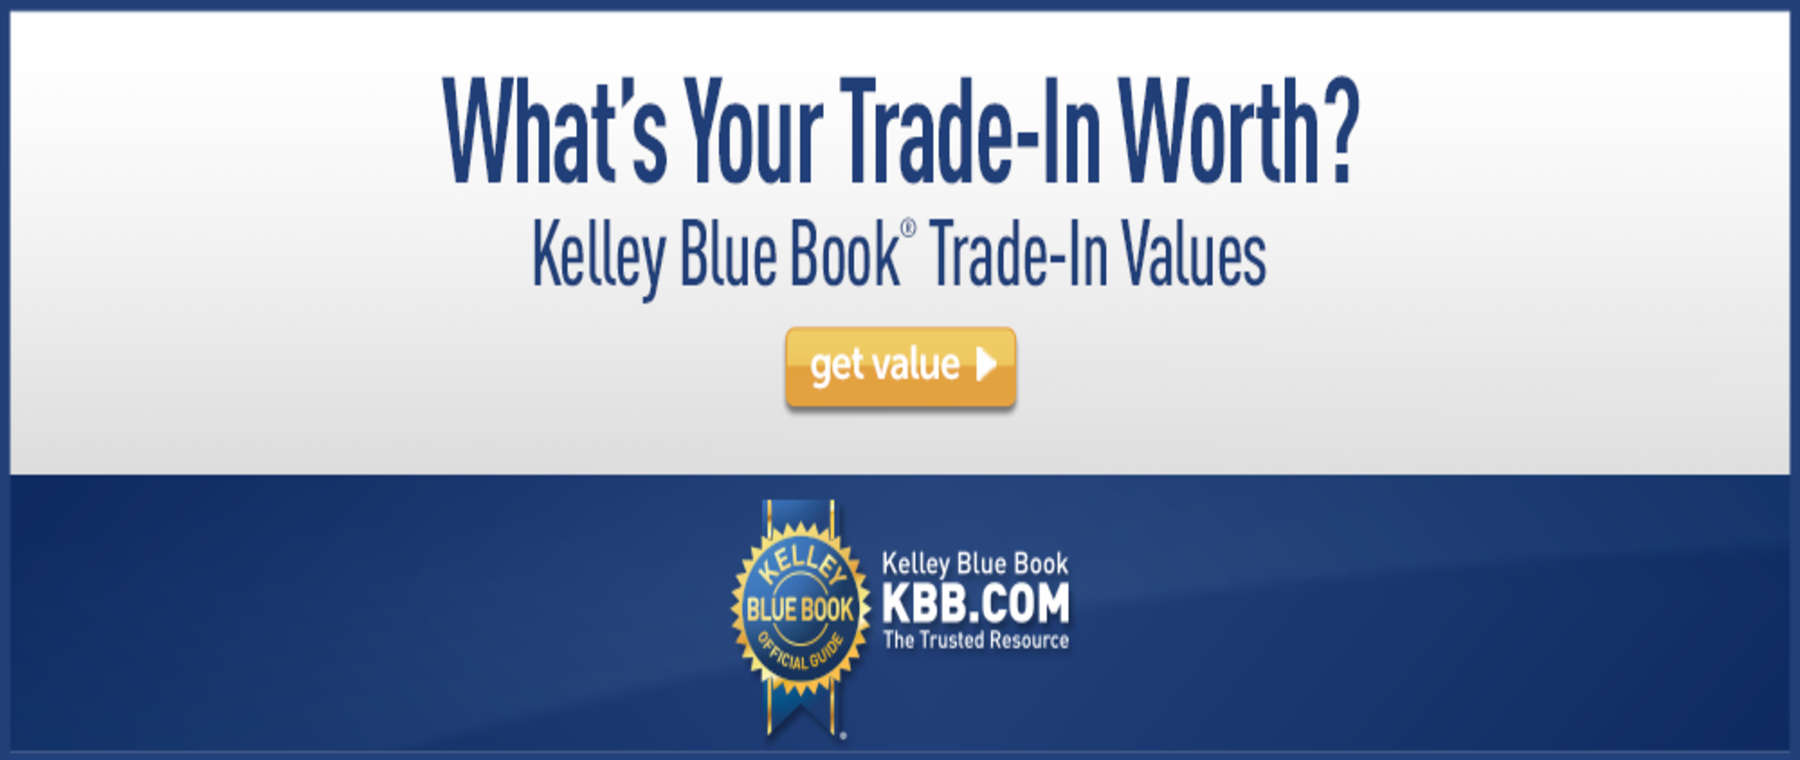 What's Your Trade-In Worth?